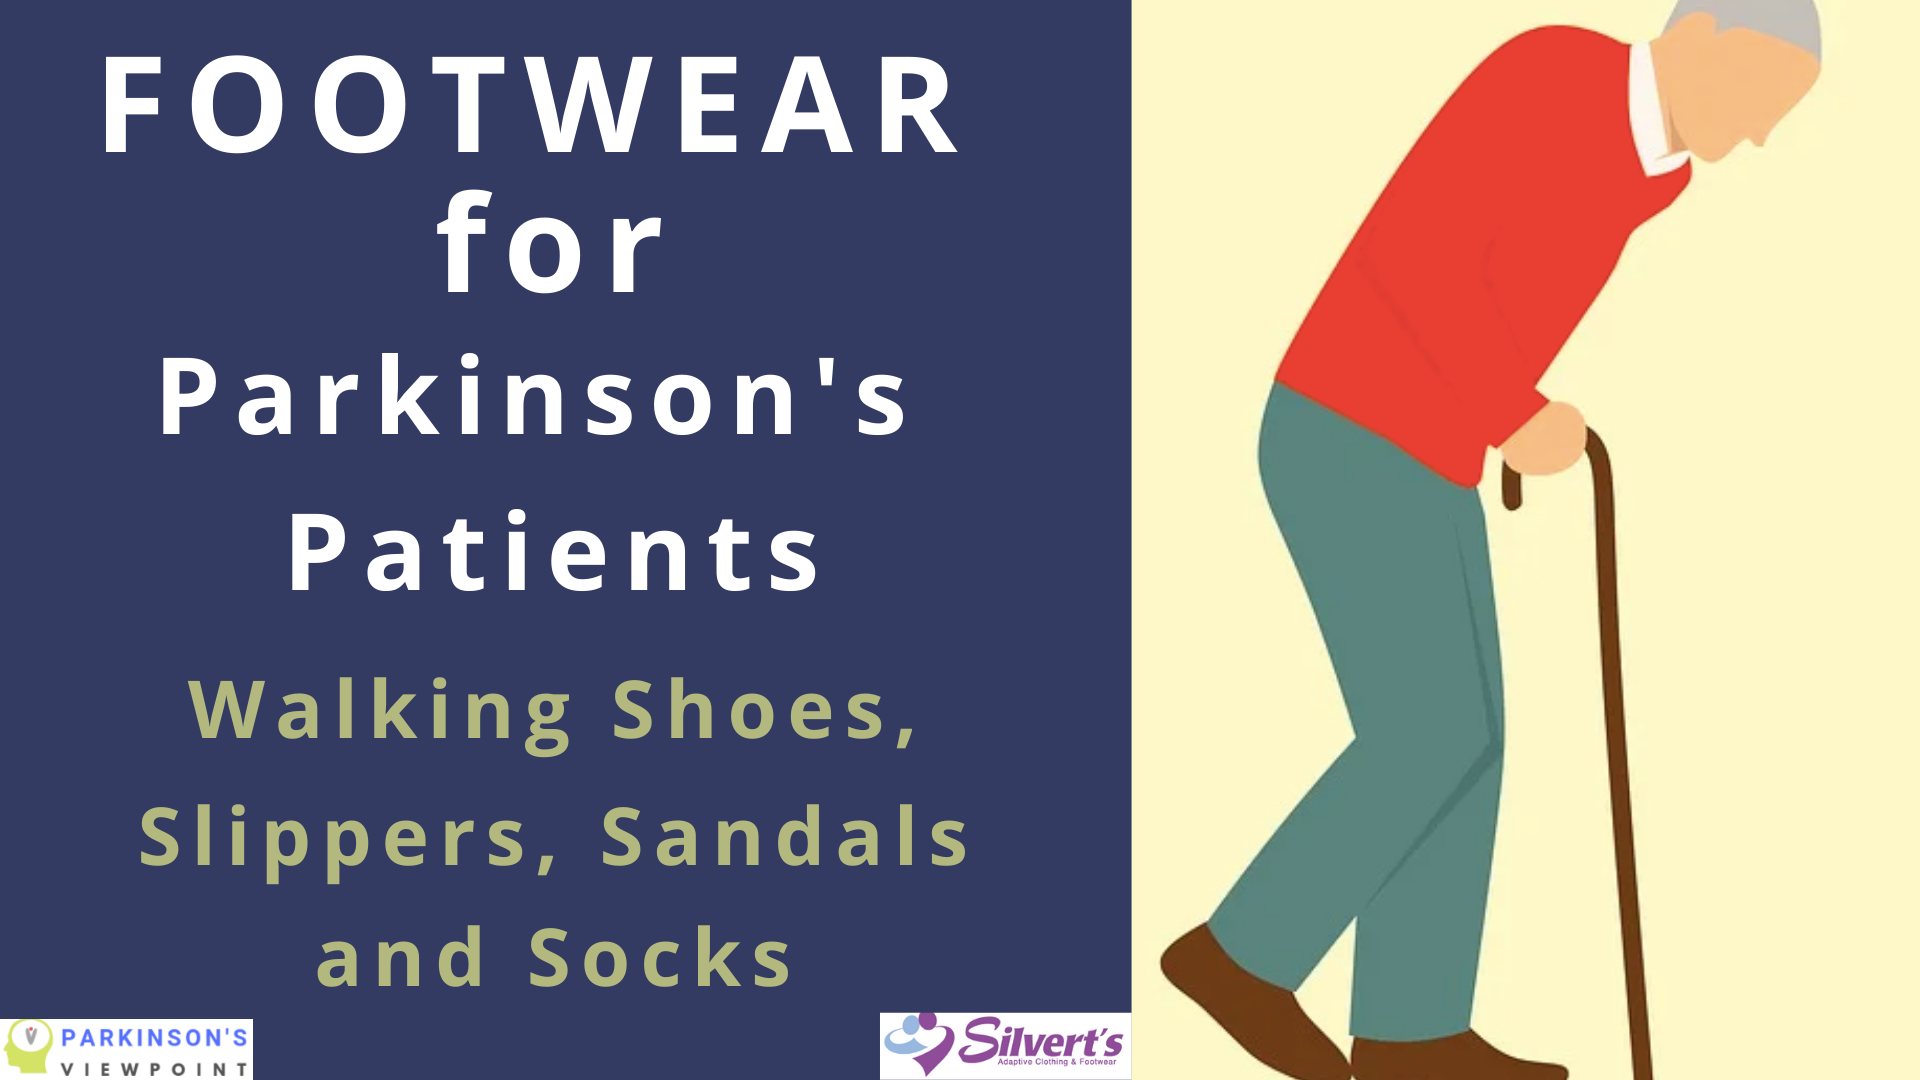 footwear for Parkinson's patients